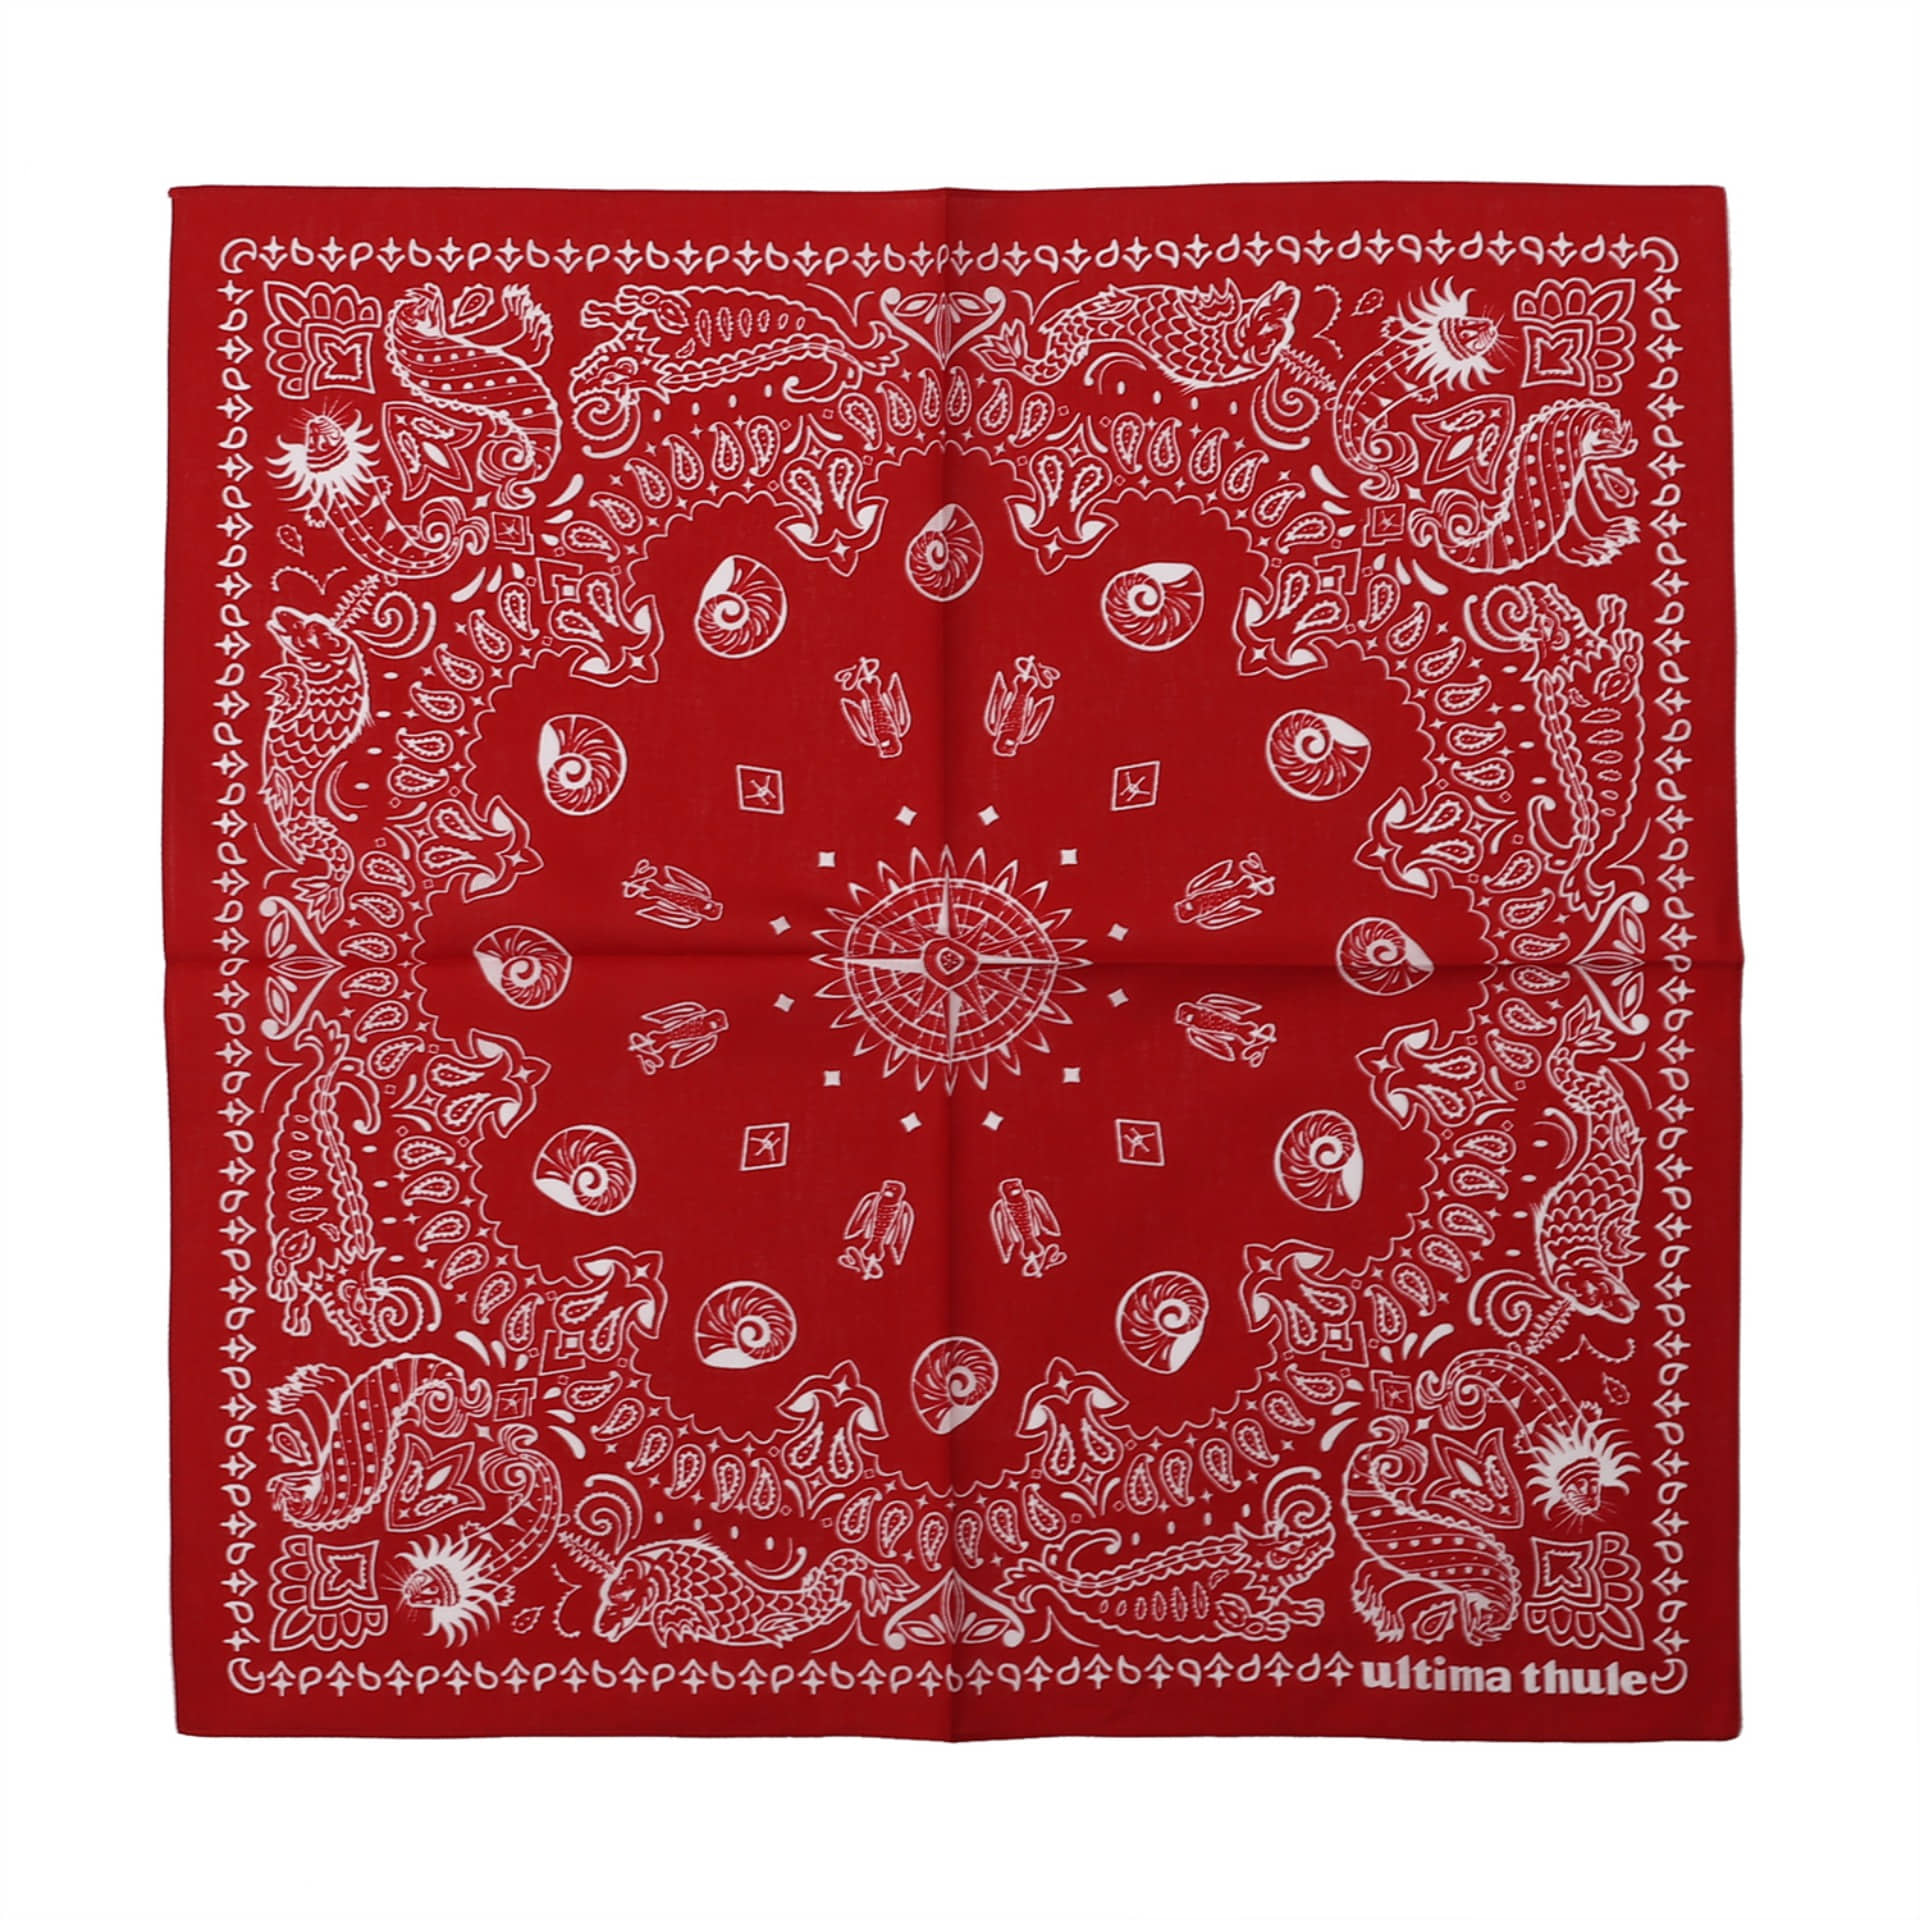 "[Ultima Thule]Equipment Bandana""WHIRLPOOL""(Red)"